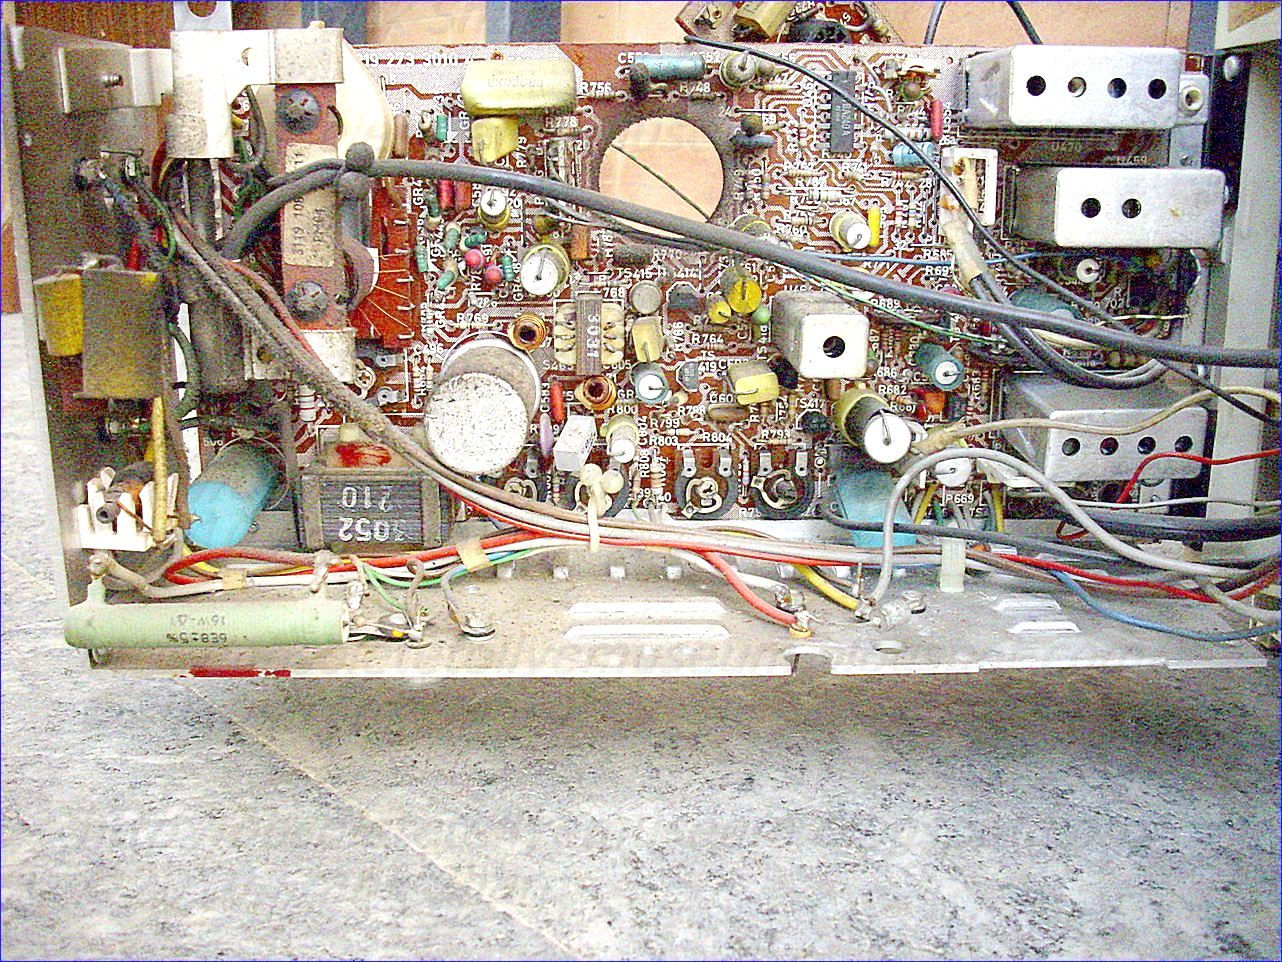 Obsolete Technology Tellye Philips I12t720 02 Positano Input And Output Coupling Bipolar Junction Transistors Electronics In One Embodiment The Current Control Device Is Implemented As An Npn Transistor Bjt Having A Collector Electrode Forming Node